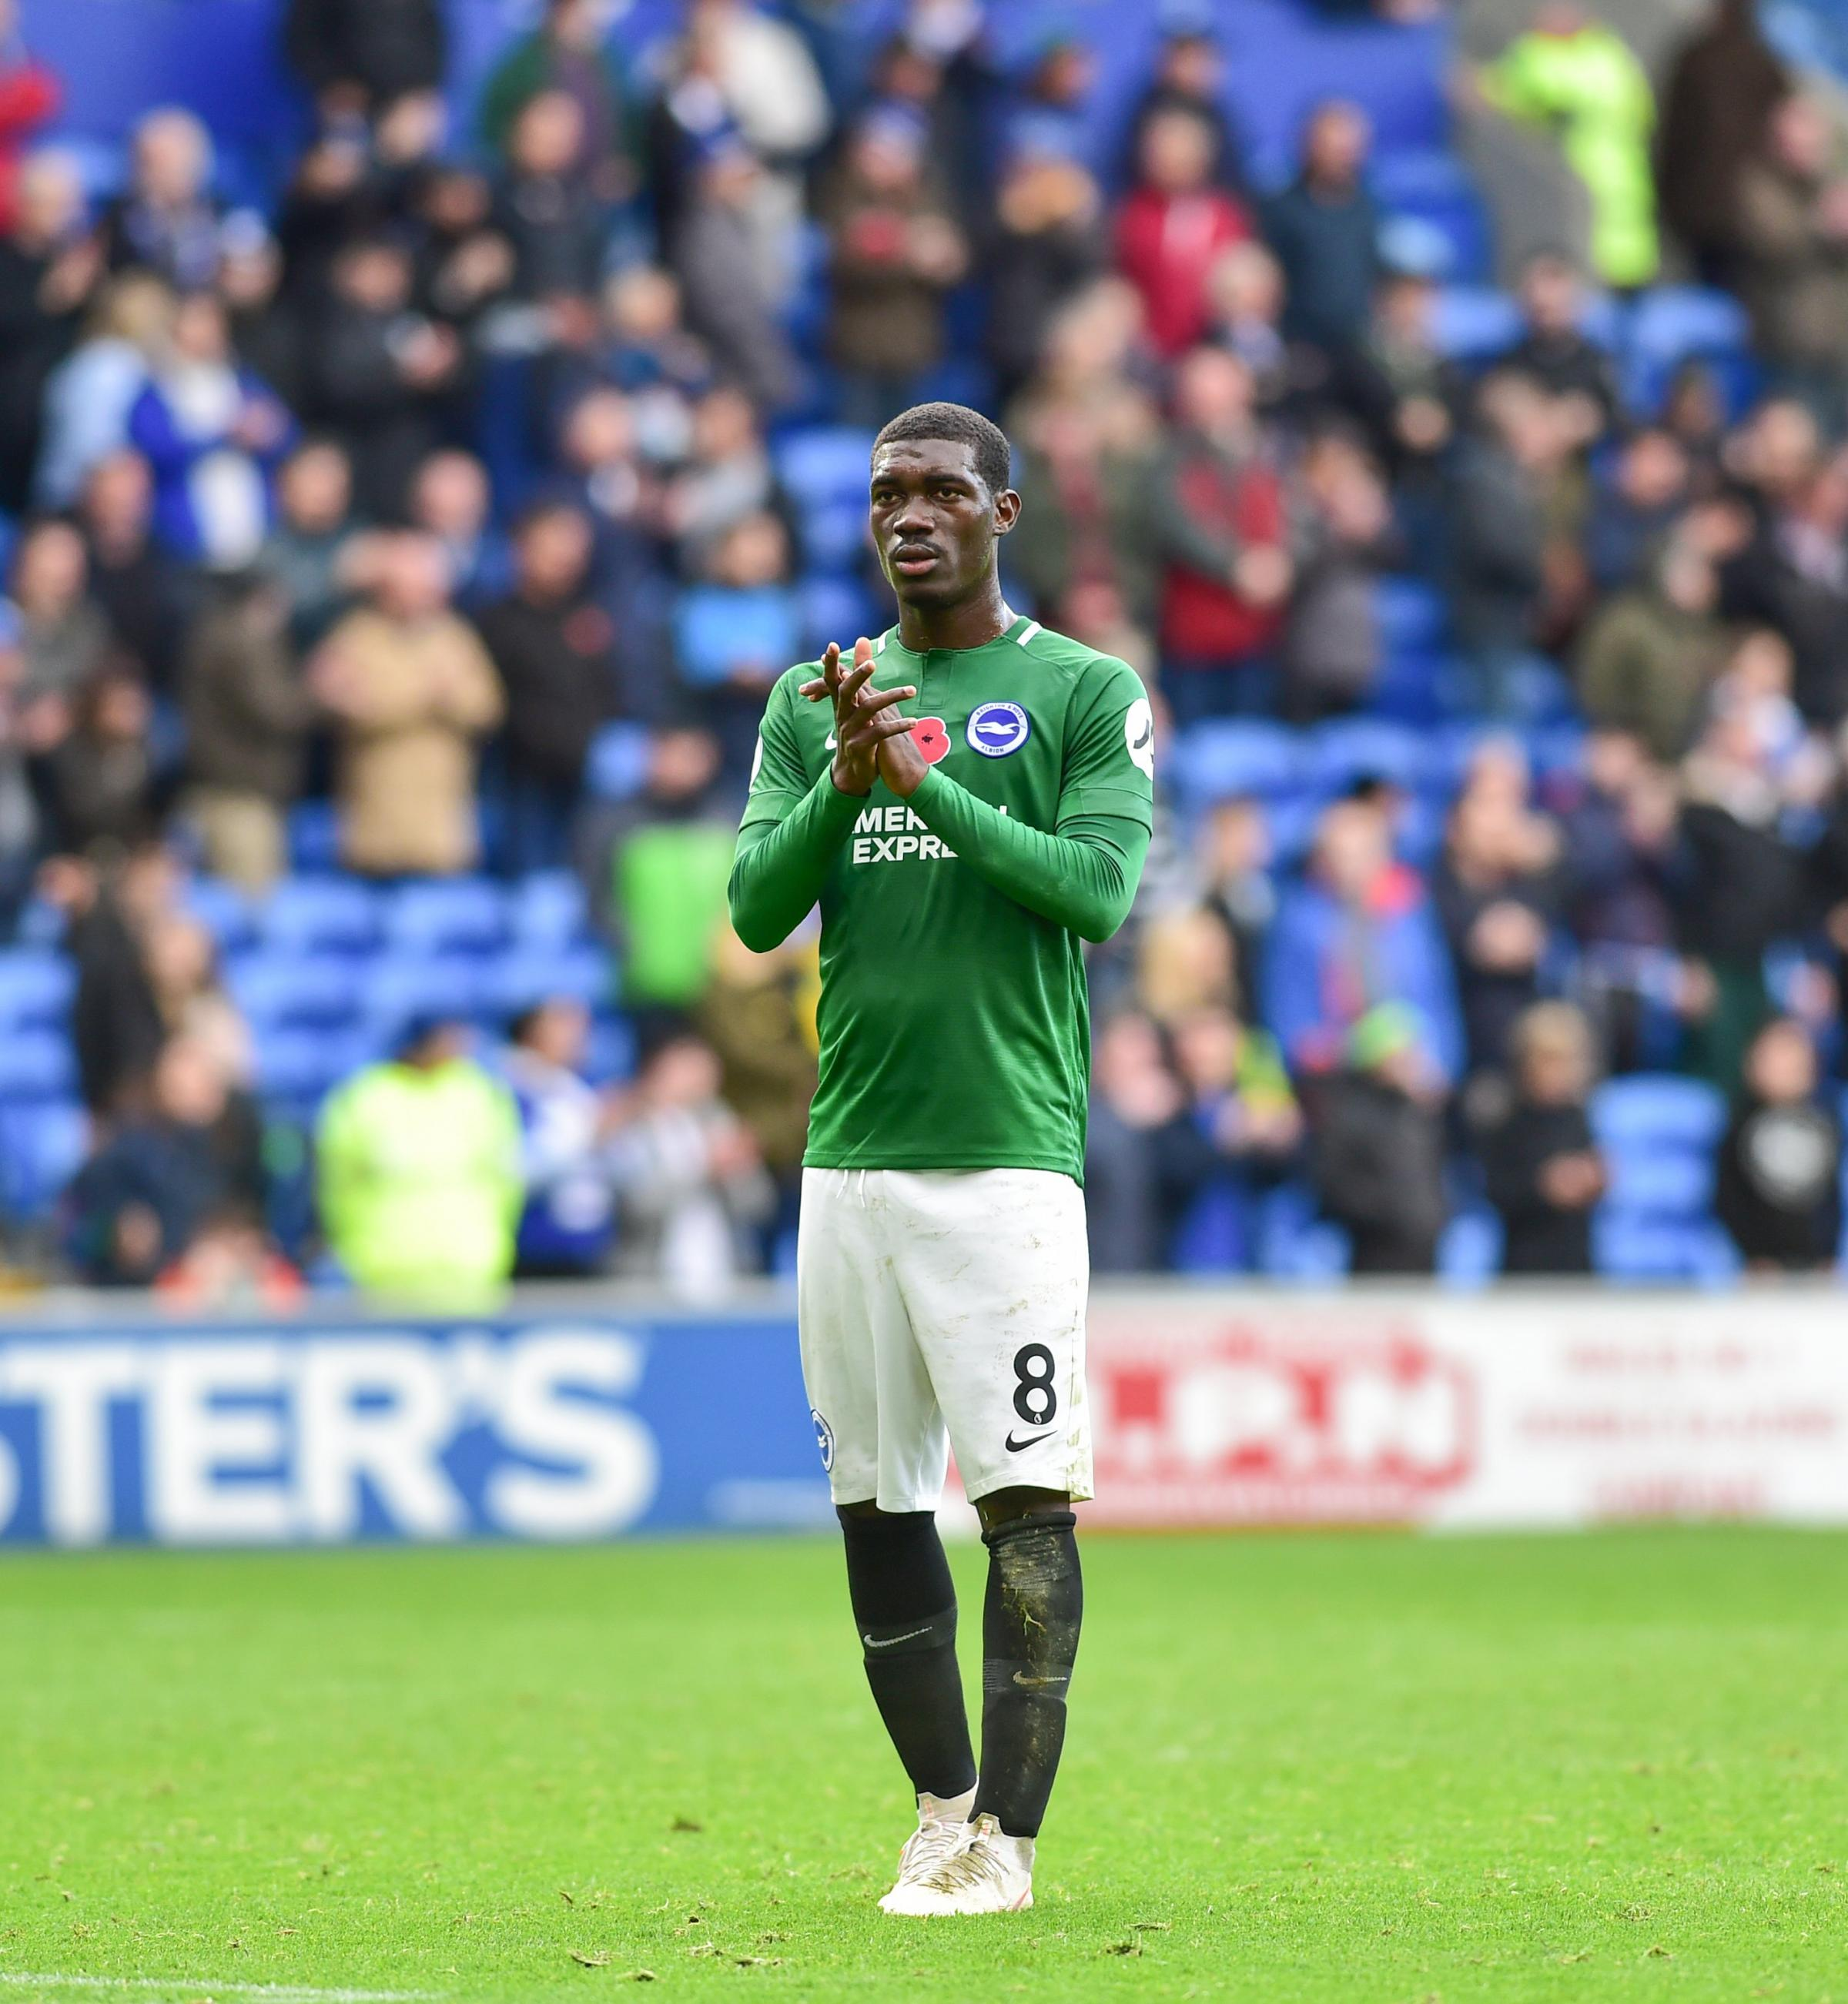 Bissouma's loss could be good news for Albion